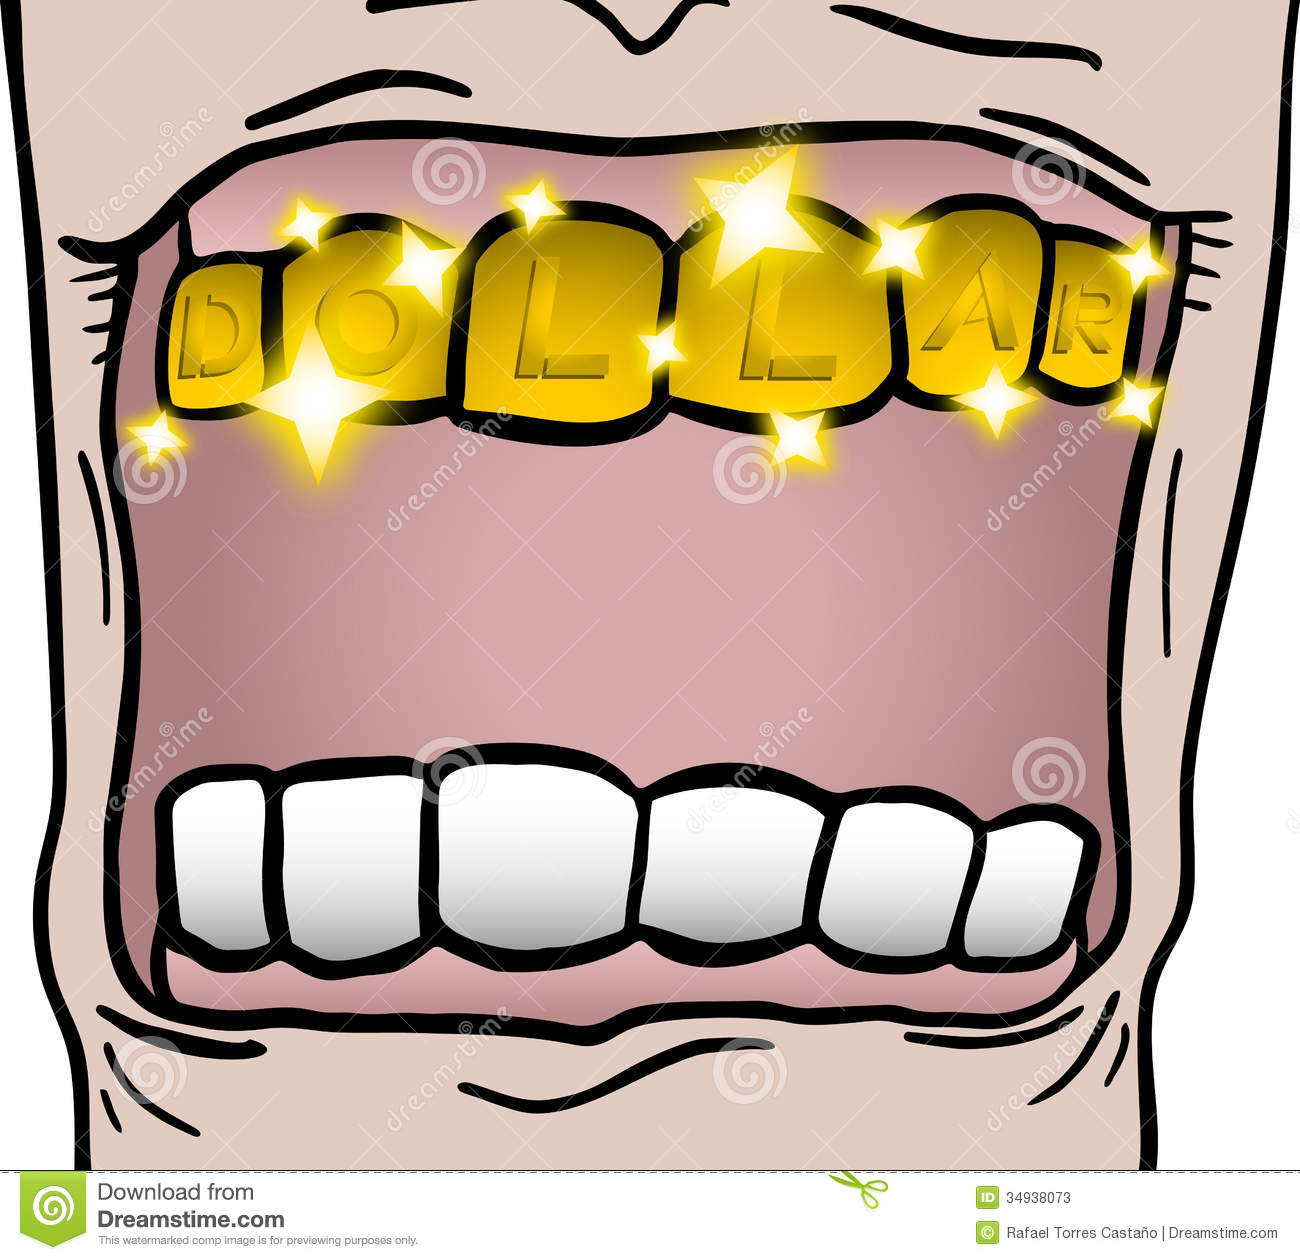 Gold tooth stock image. Image of dollar, mouth, money ...